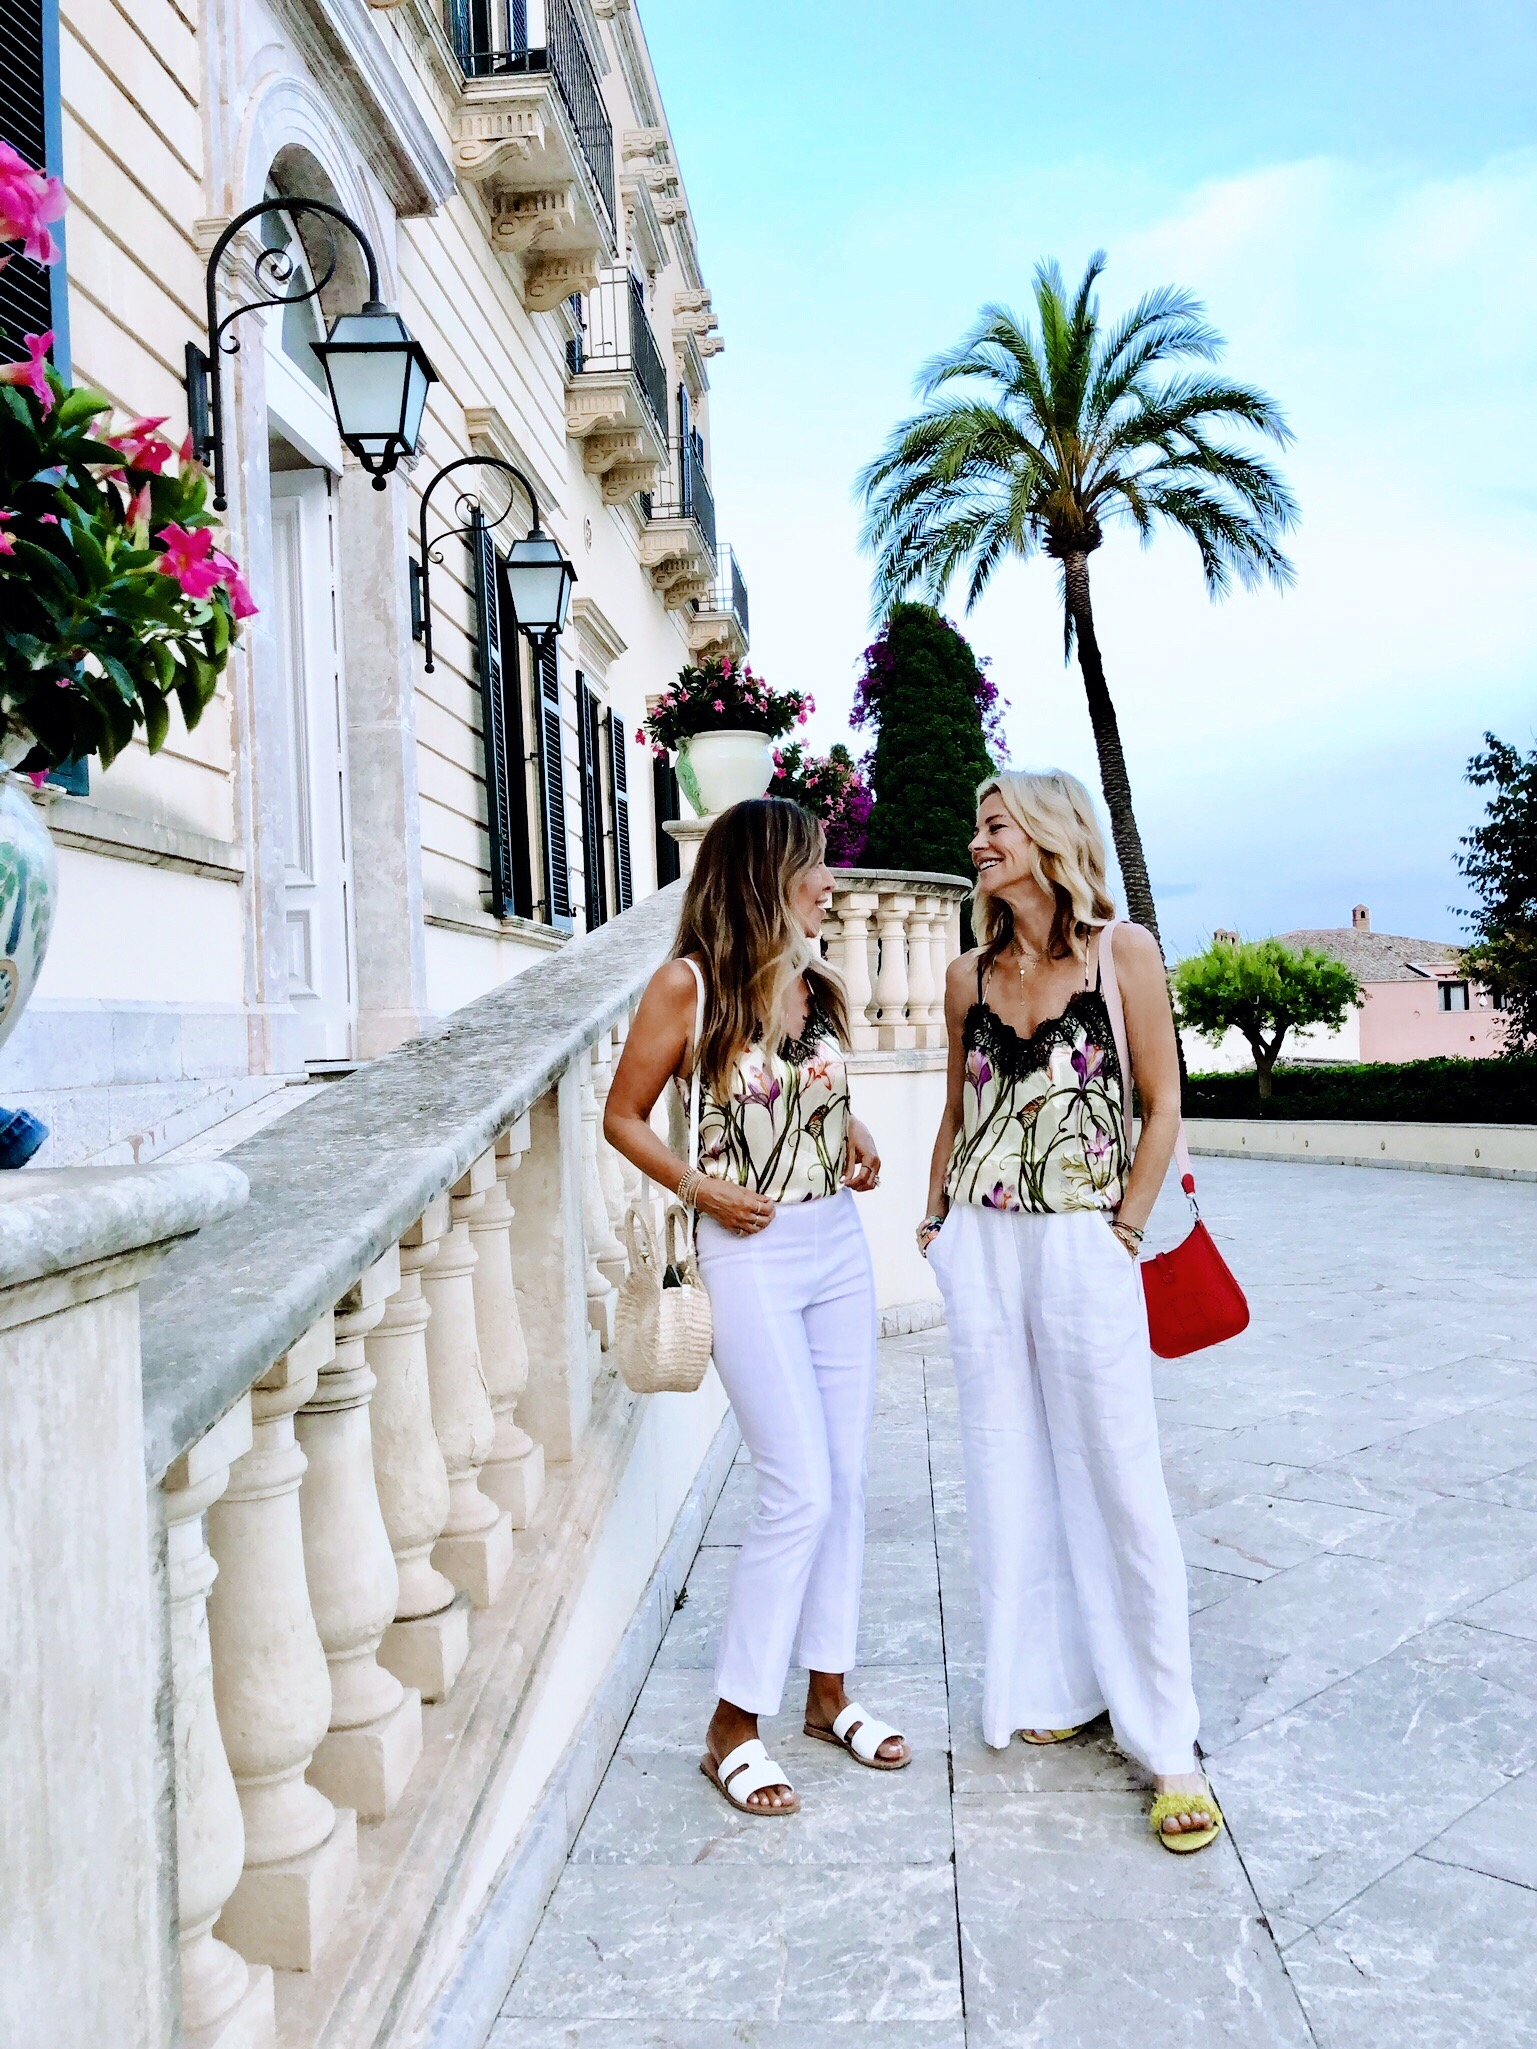 With Janet Gunn  Grateful Gardenia  in Sicily at The  Belmond Grande Hotel Timeo . Wearing  Franne Golde magic pants  in white.   Use code MM10 for 10% off while shopping    www.frannegolde.com   .   Silk top by Hark + Hammer,  Bag by ClareV,   Sandals  by  Ancient Greek Sandals .